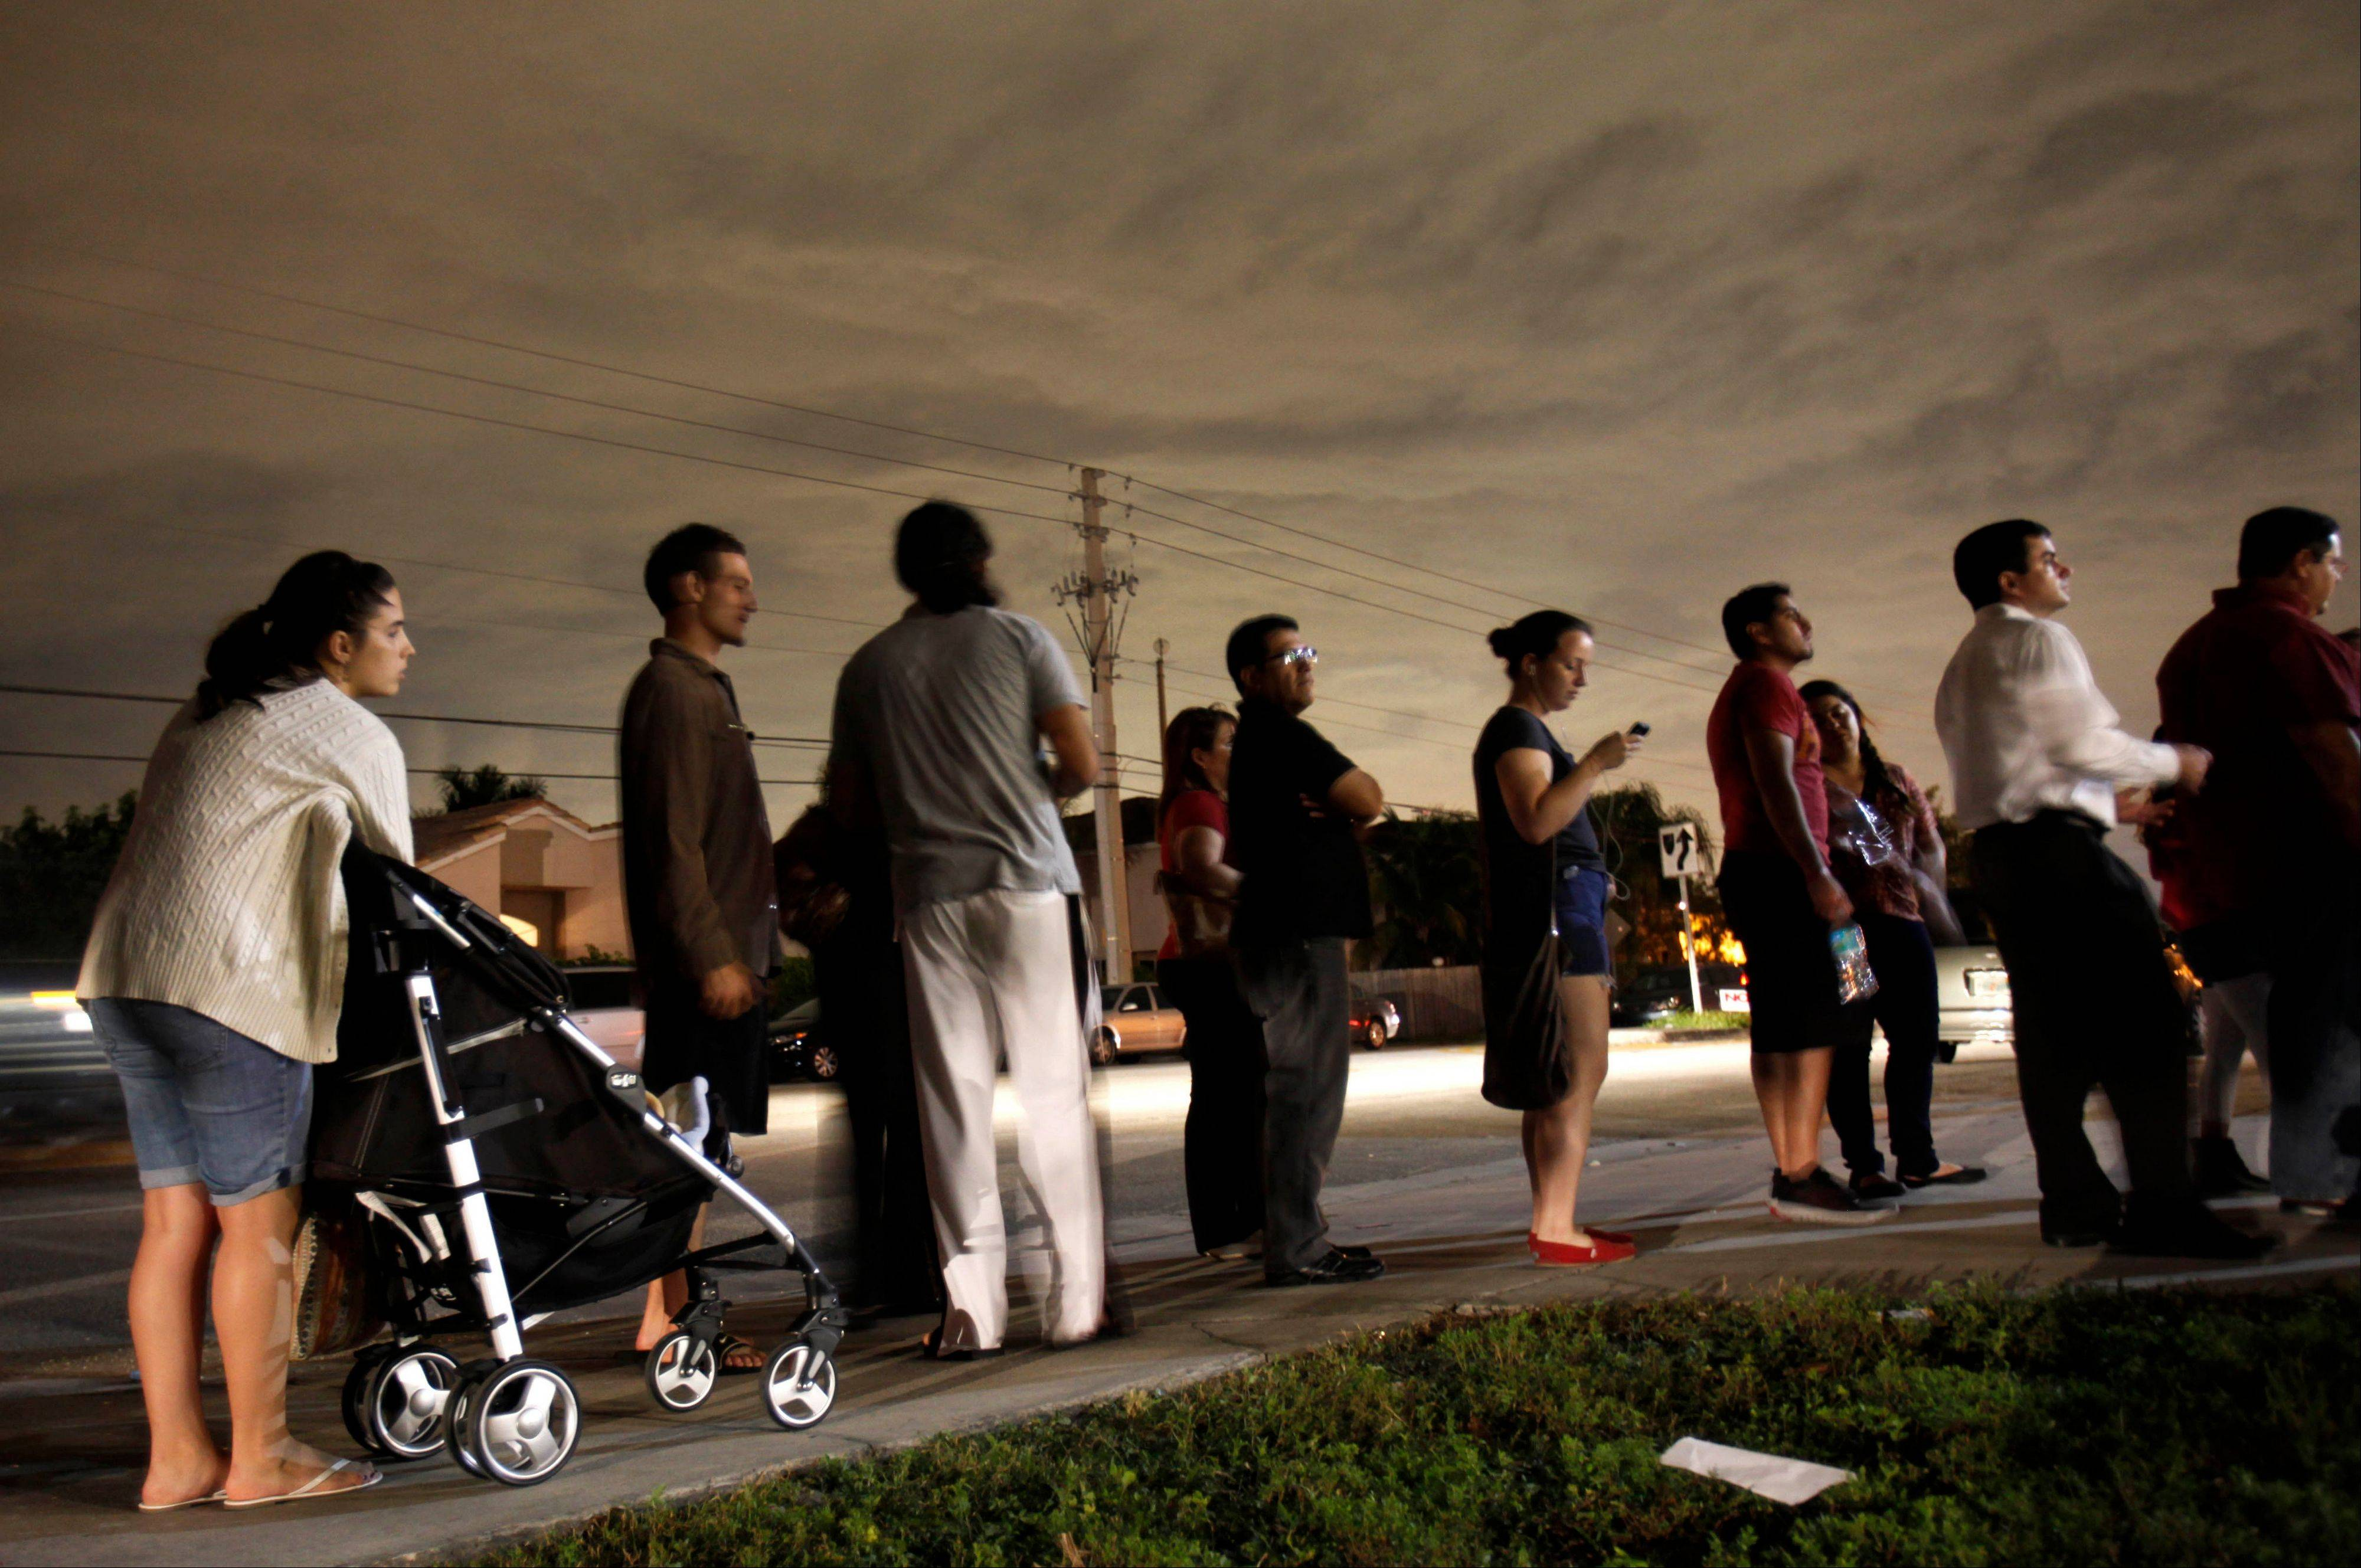 Associated PressVoters line up in the dark Tuesday to beat the 7 p.m. deadline to cast their ballots at a polling station in Miami.